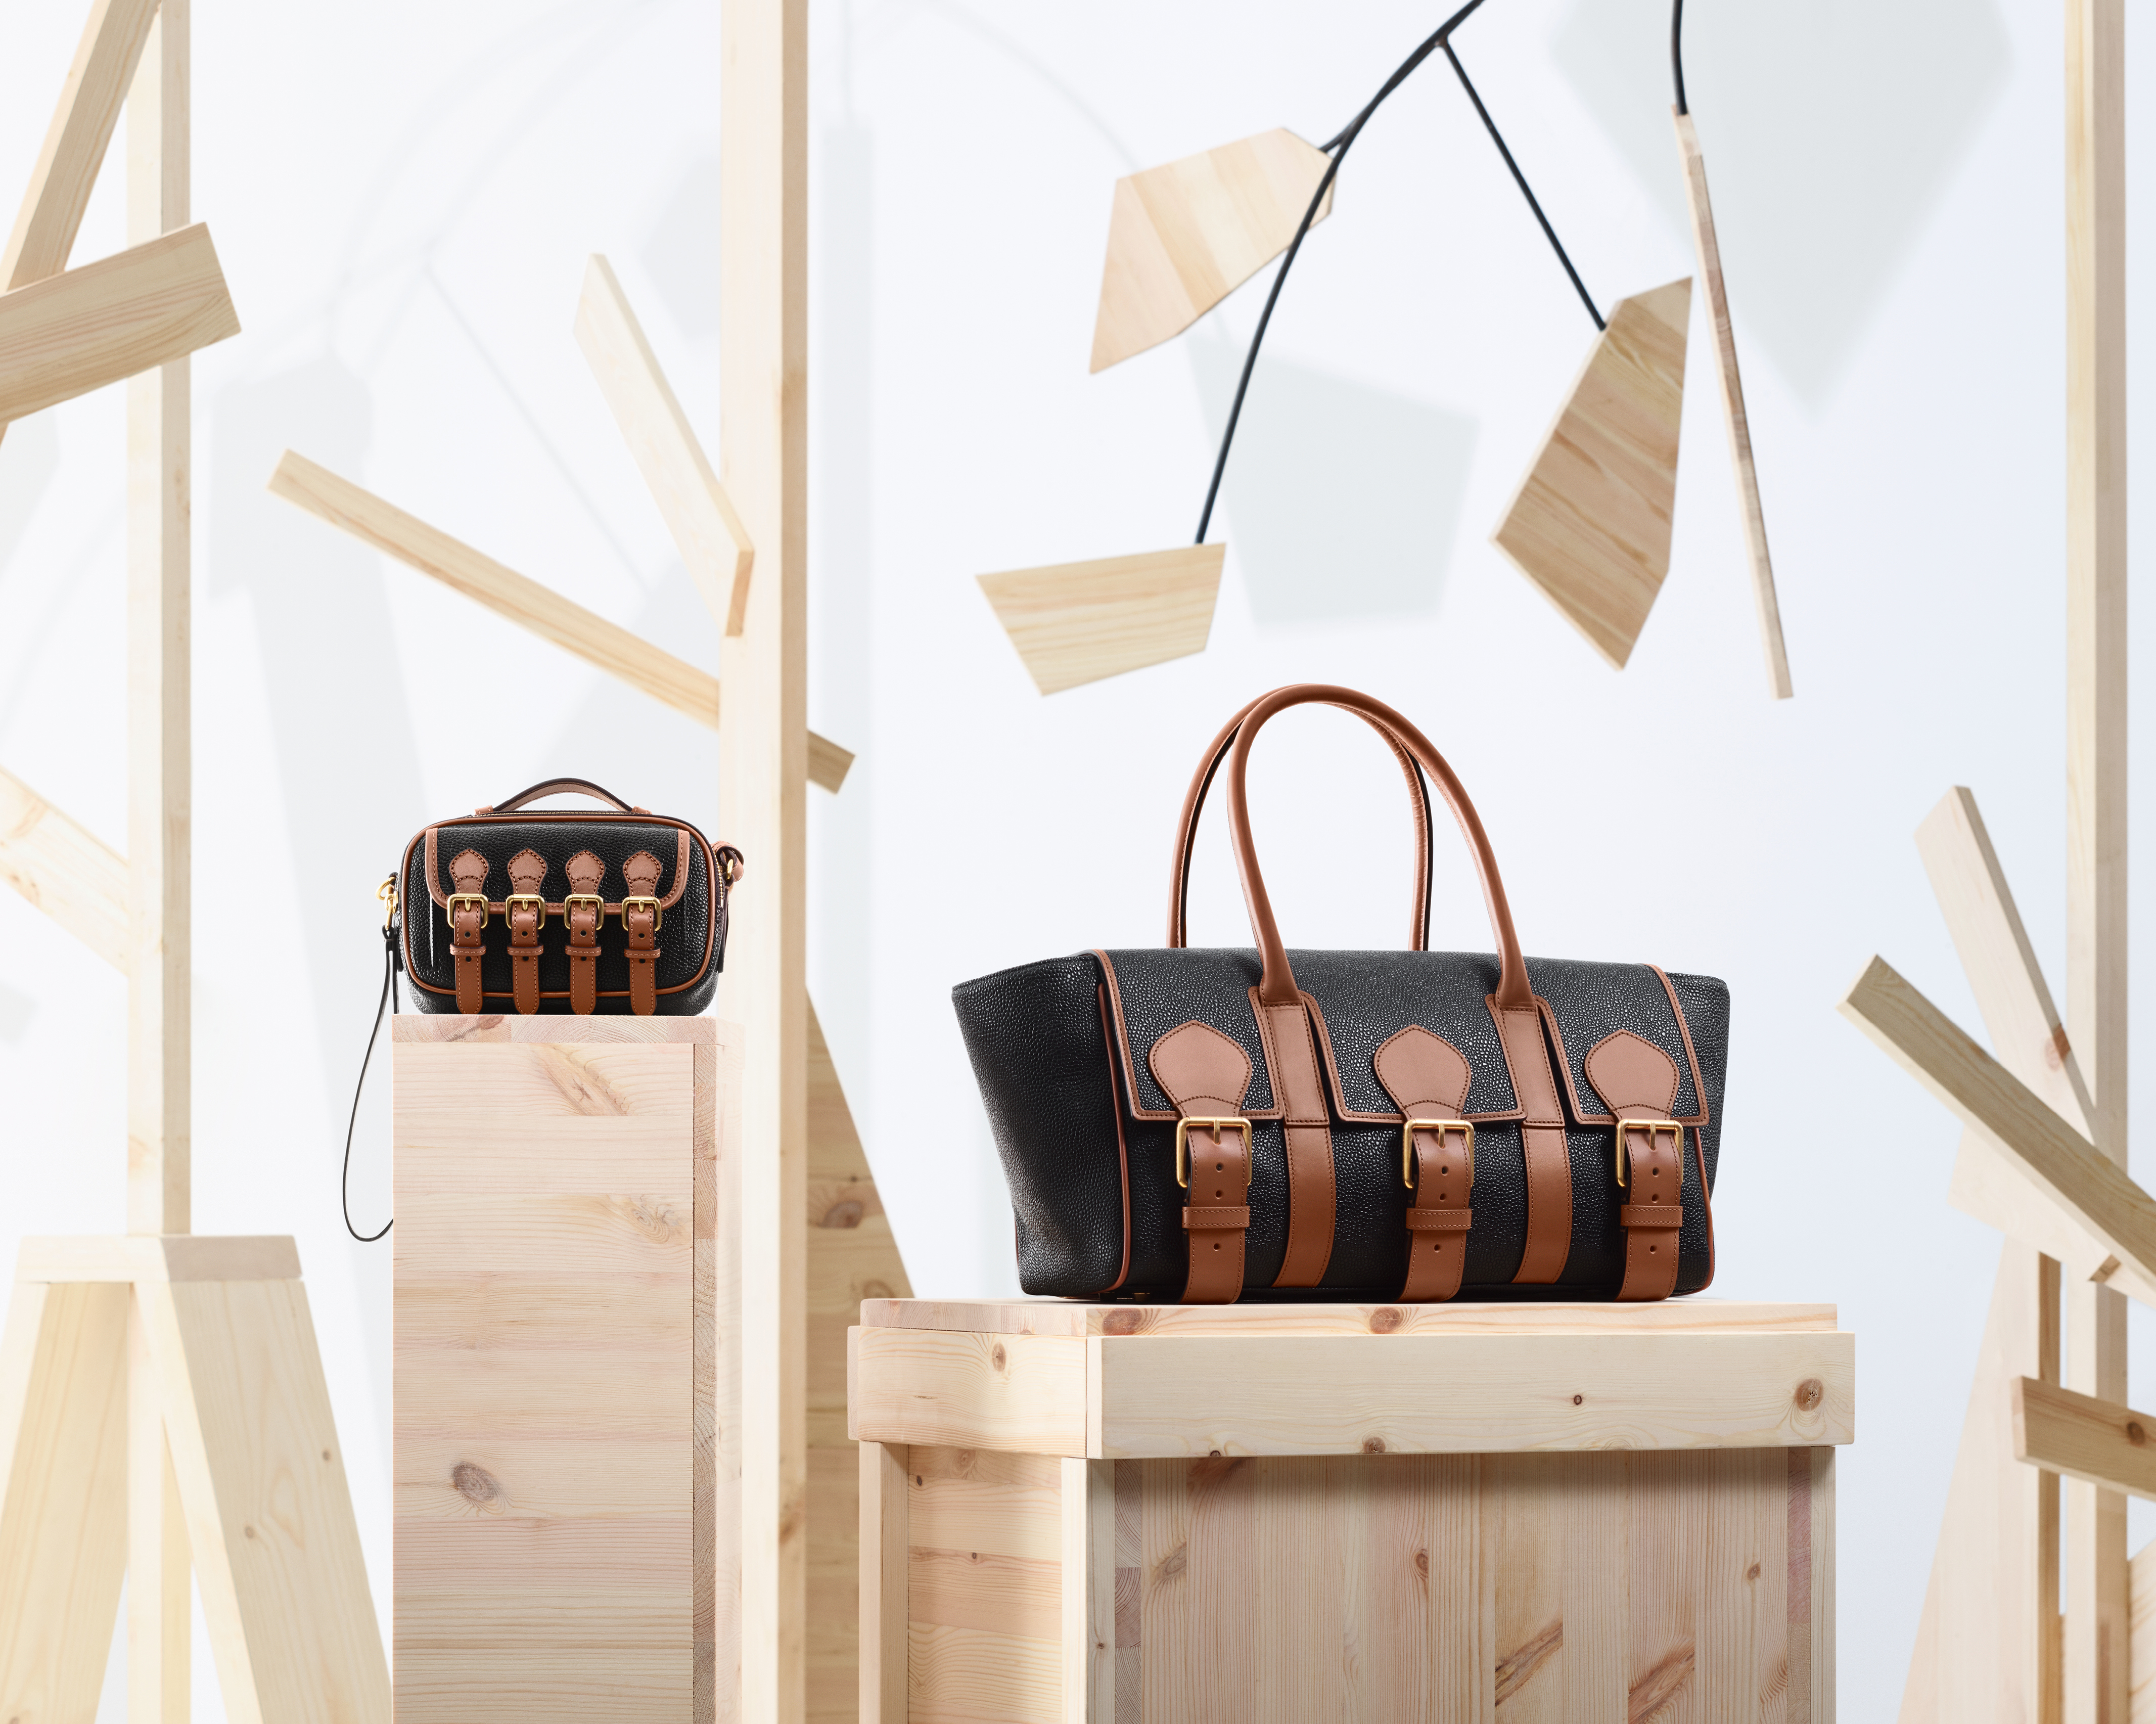 Acne Studios Mulberry 2 - Acne Studios And Mulberry Become Fashion's Latest Odd Couple